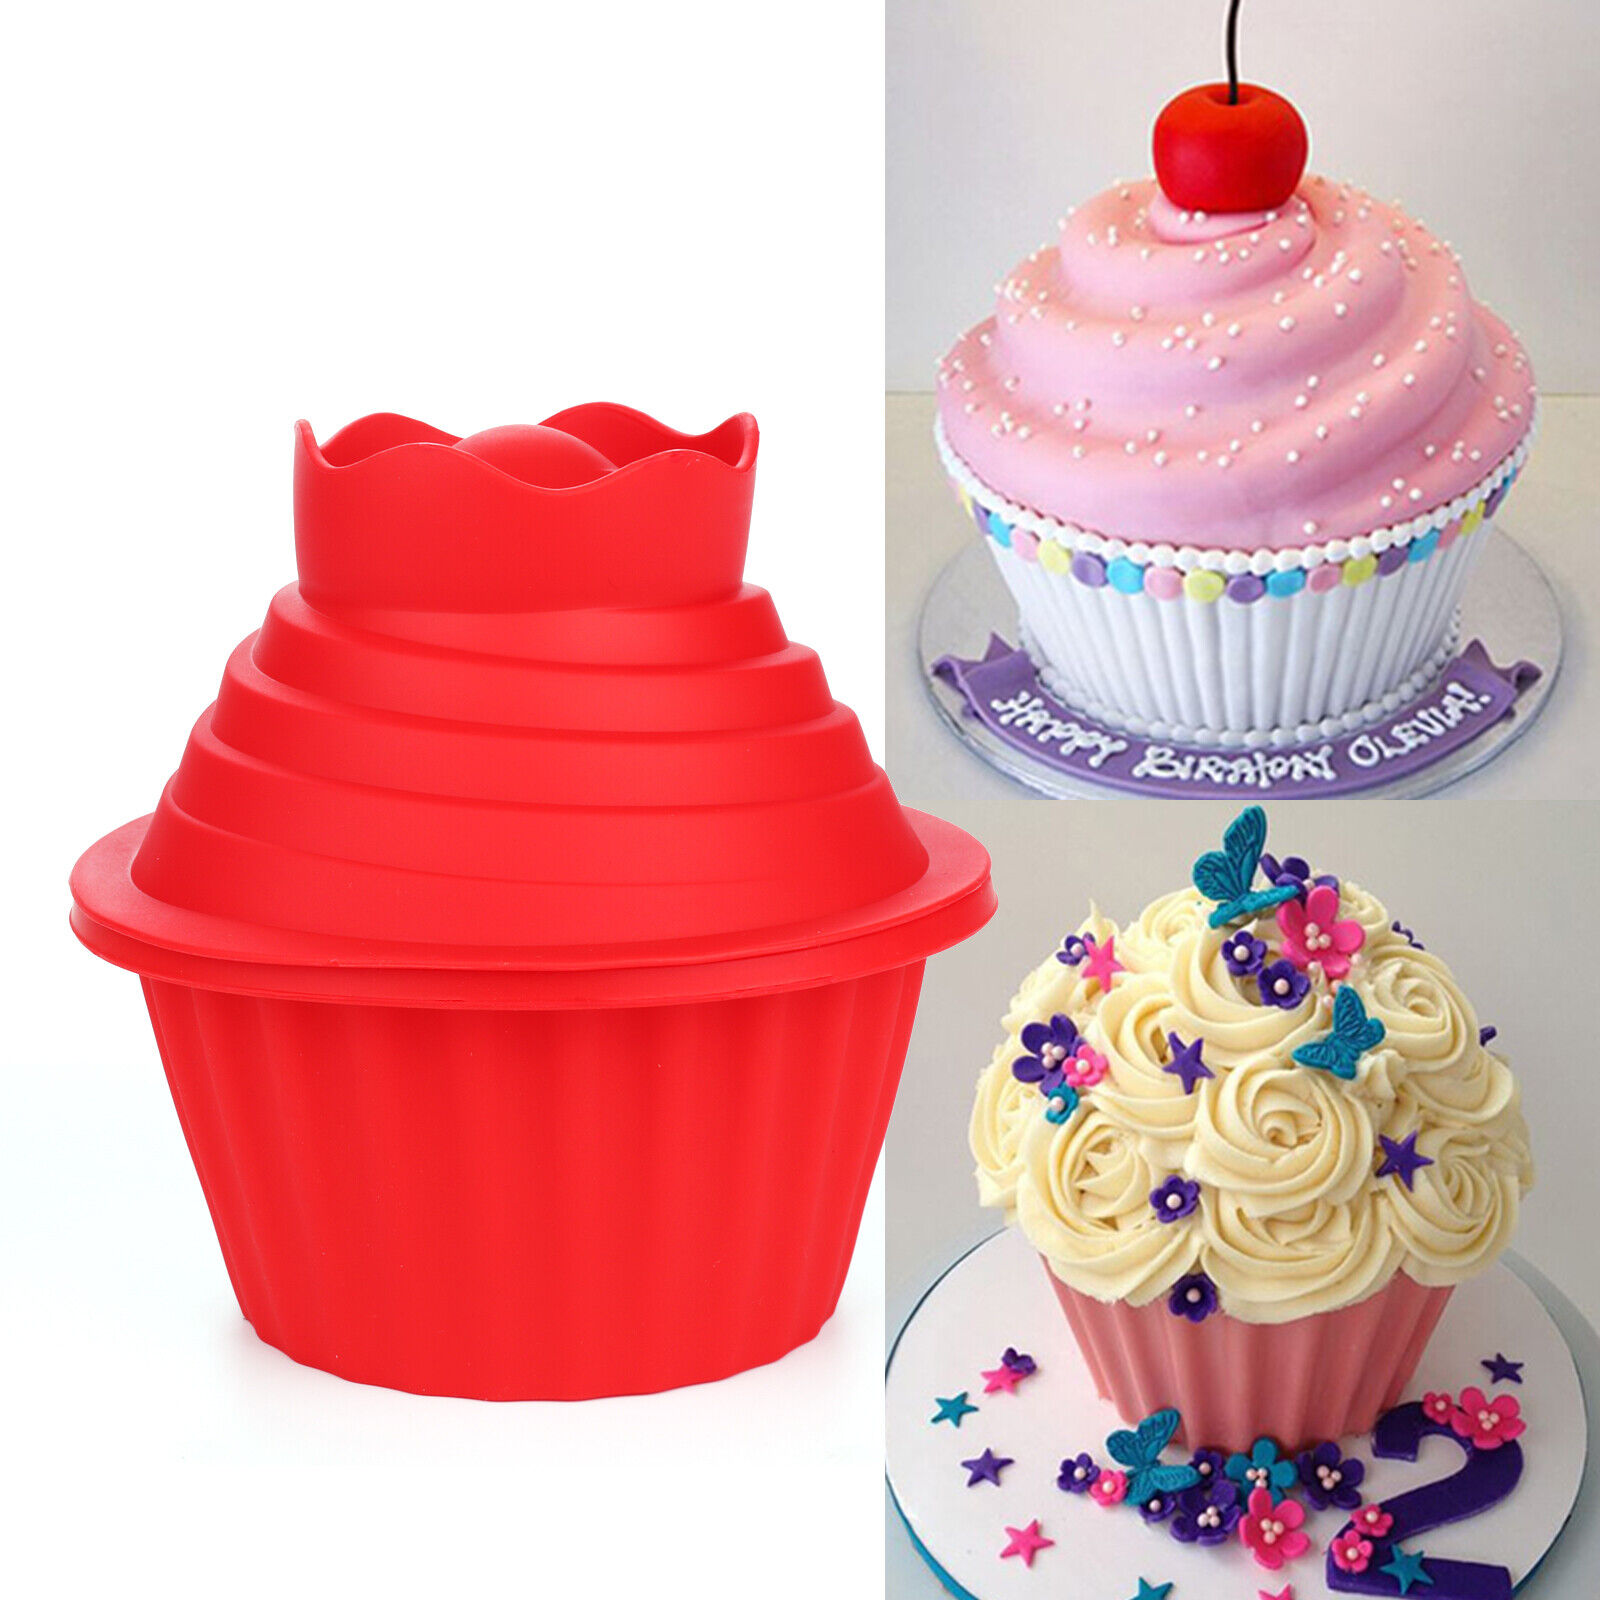 Swell 3Pc Big Top Giant Cupcake Mould Jumbo Silicone Birthday Cup Cake Funny Birthday Cards Online Overcheapnameinfo